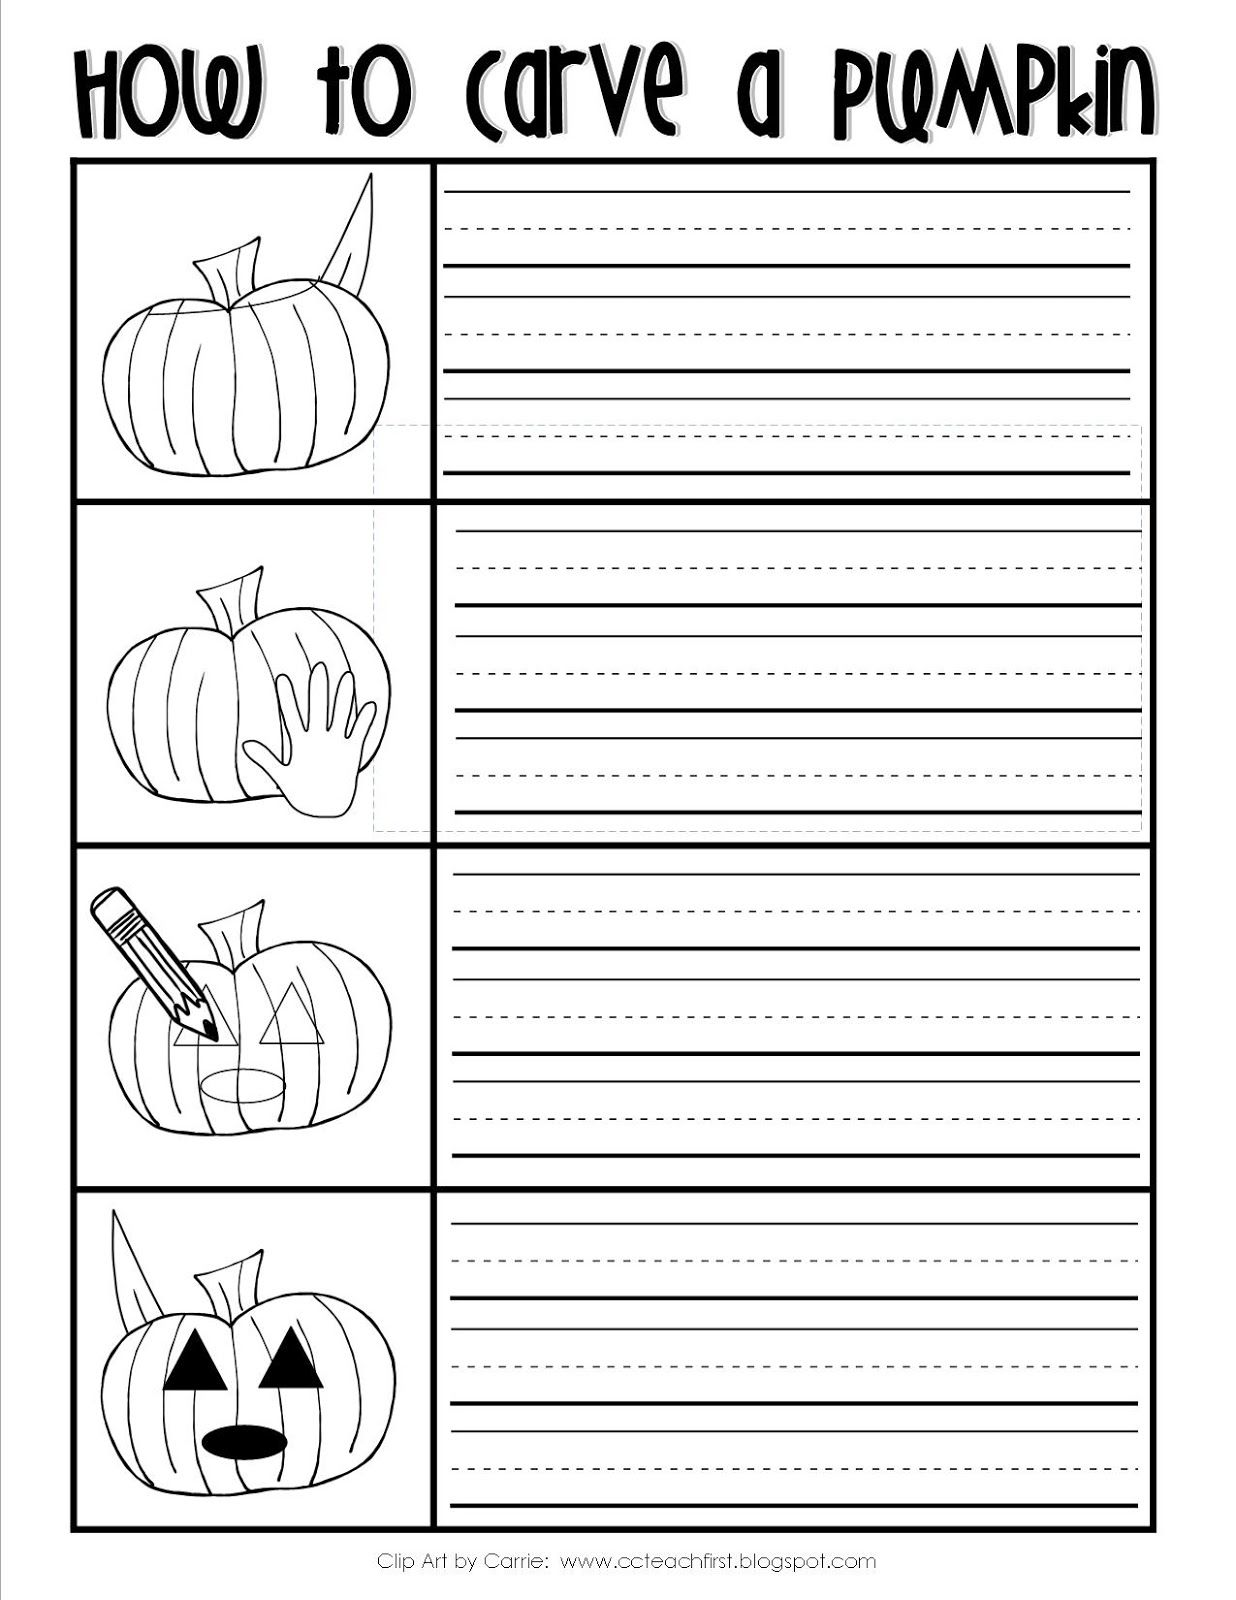 How To Carve A Pumpkin Writing Sheet Freebie By C Amp C Teach